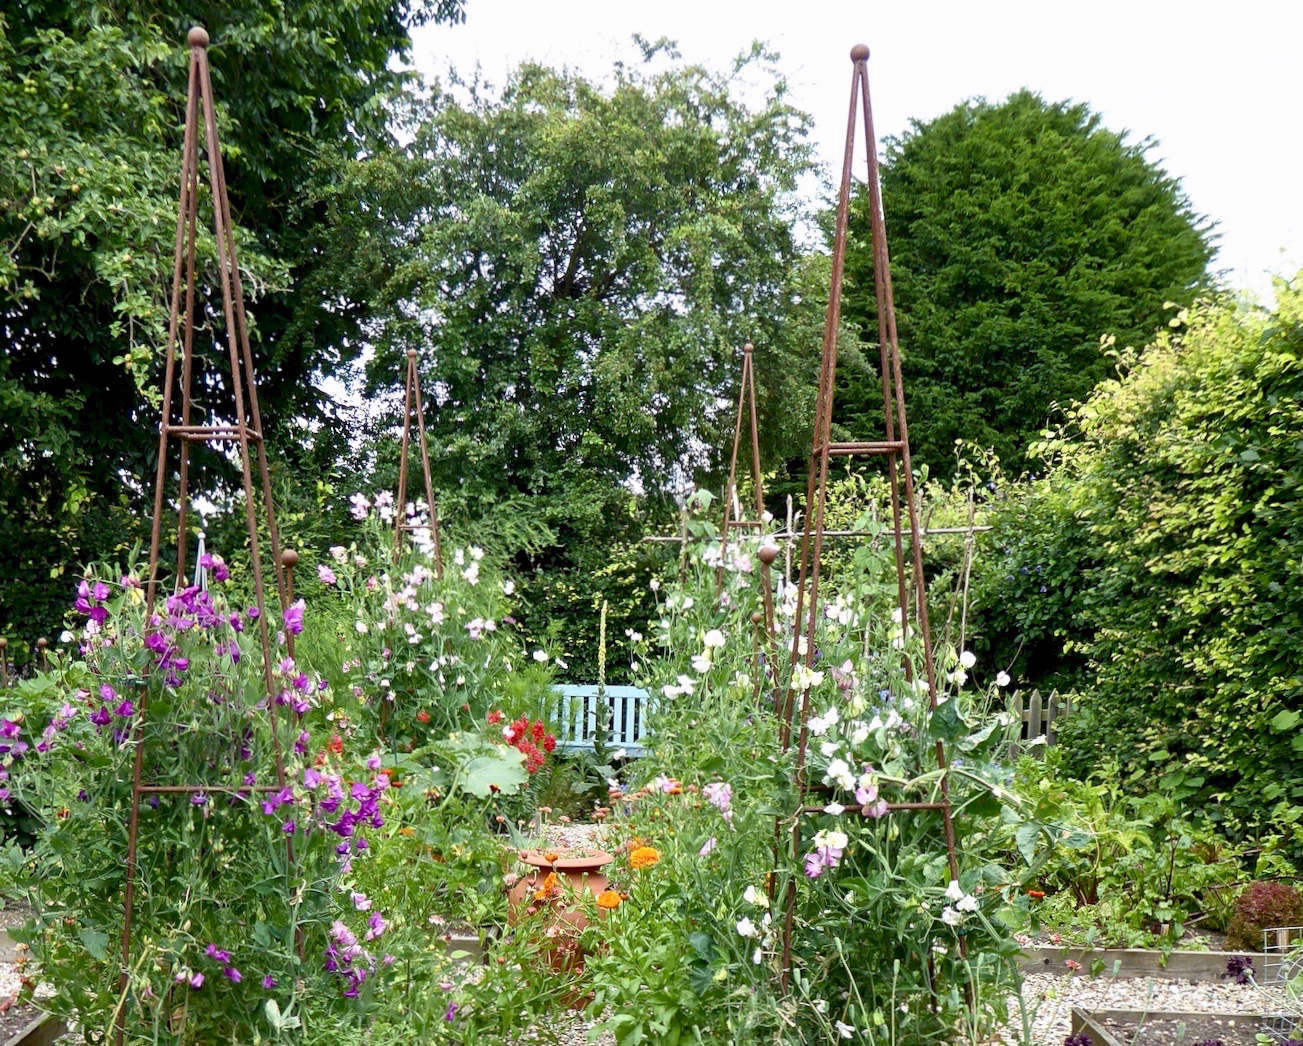 For more of this garden, see Before & After: A Kitchen Garden in Sussex, England. Photograph by Clare Coulson.